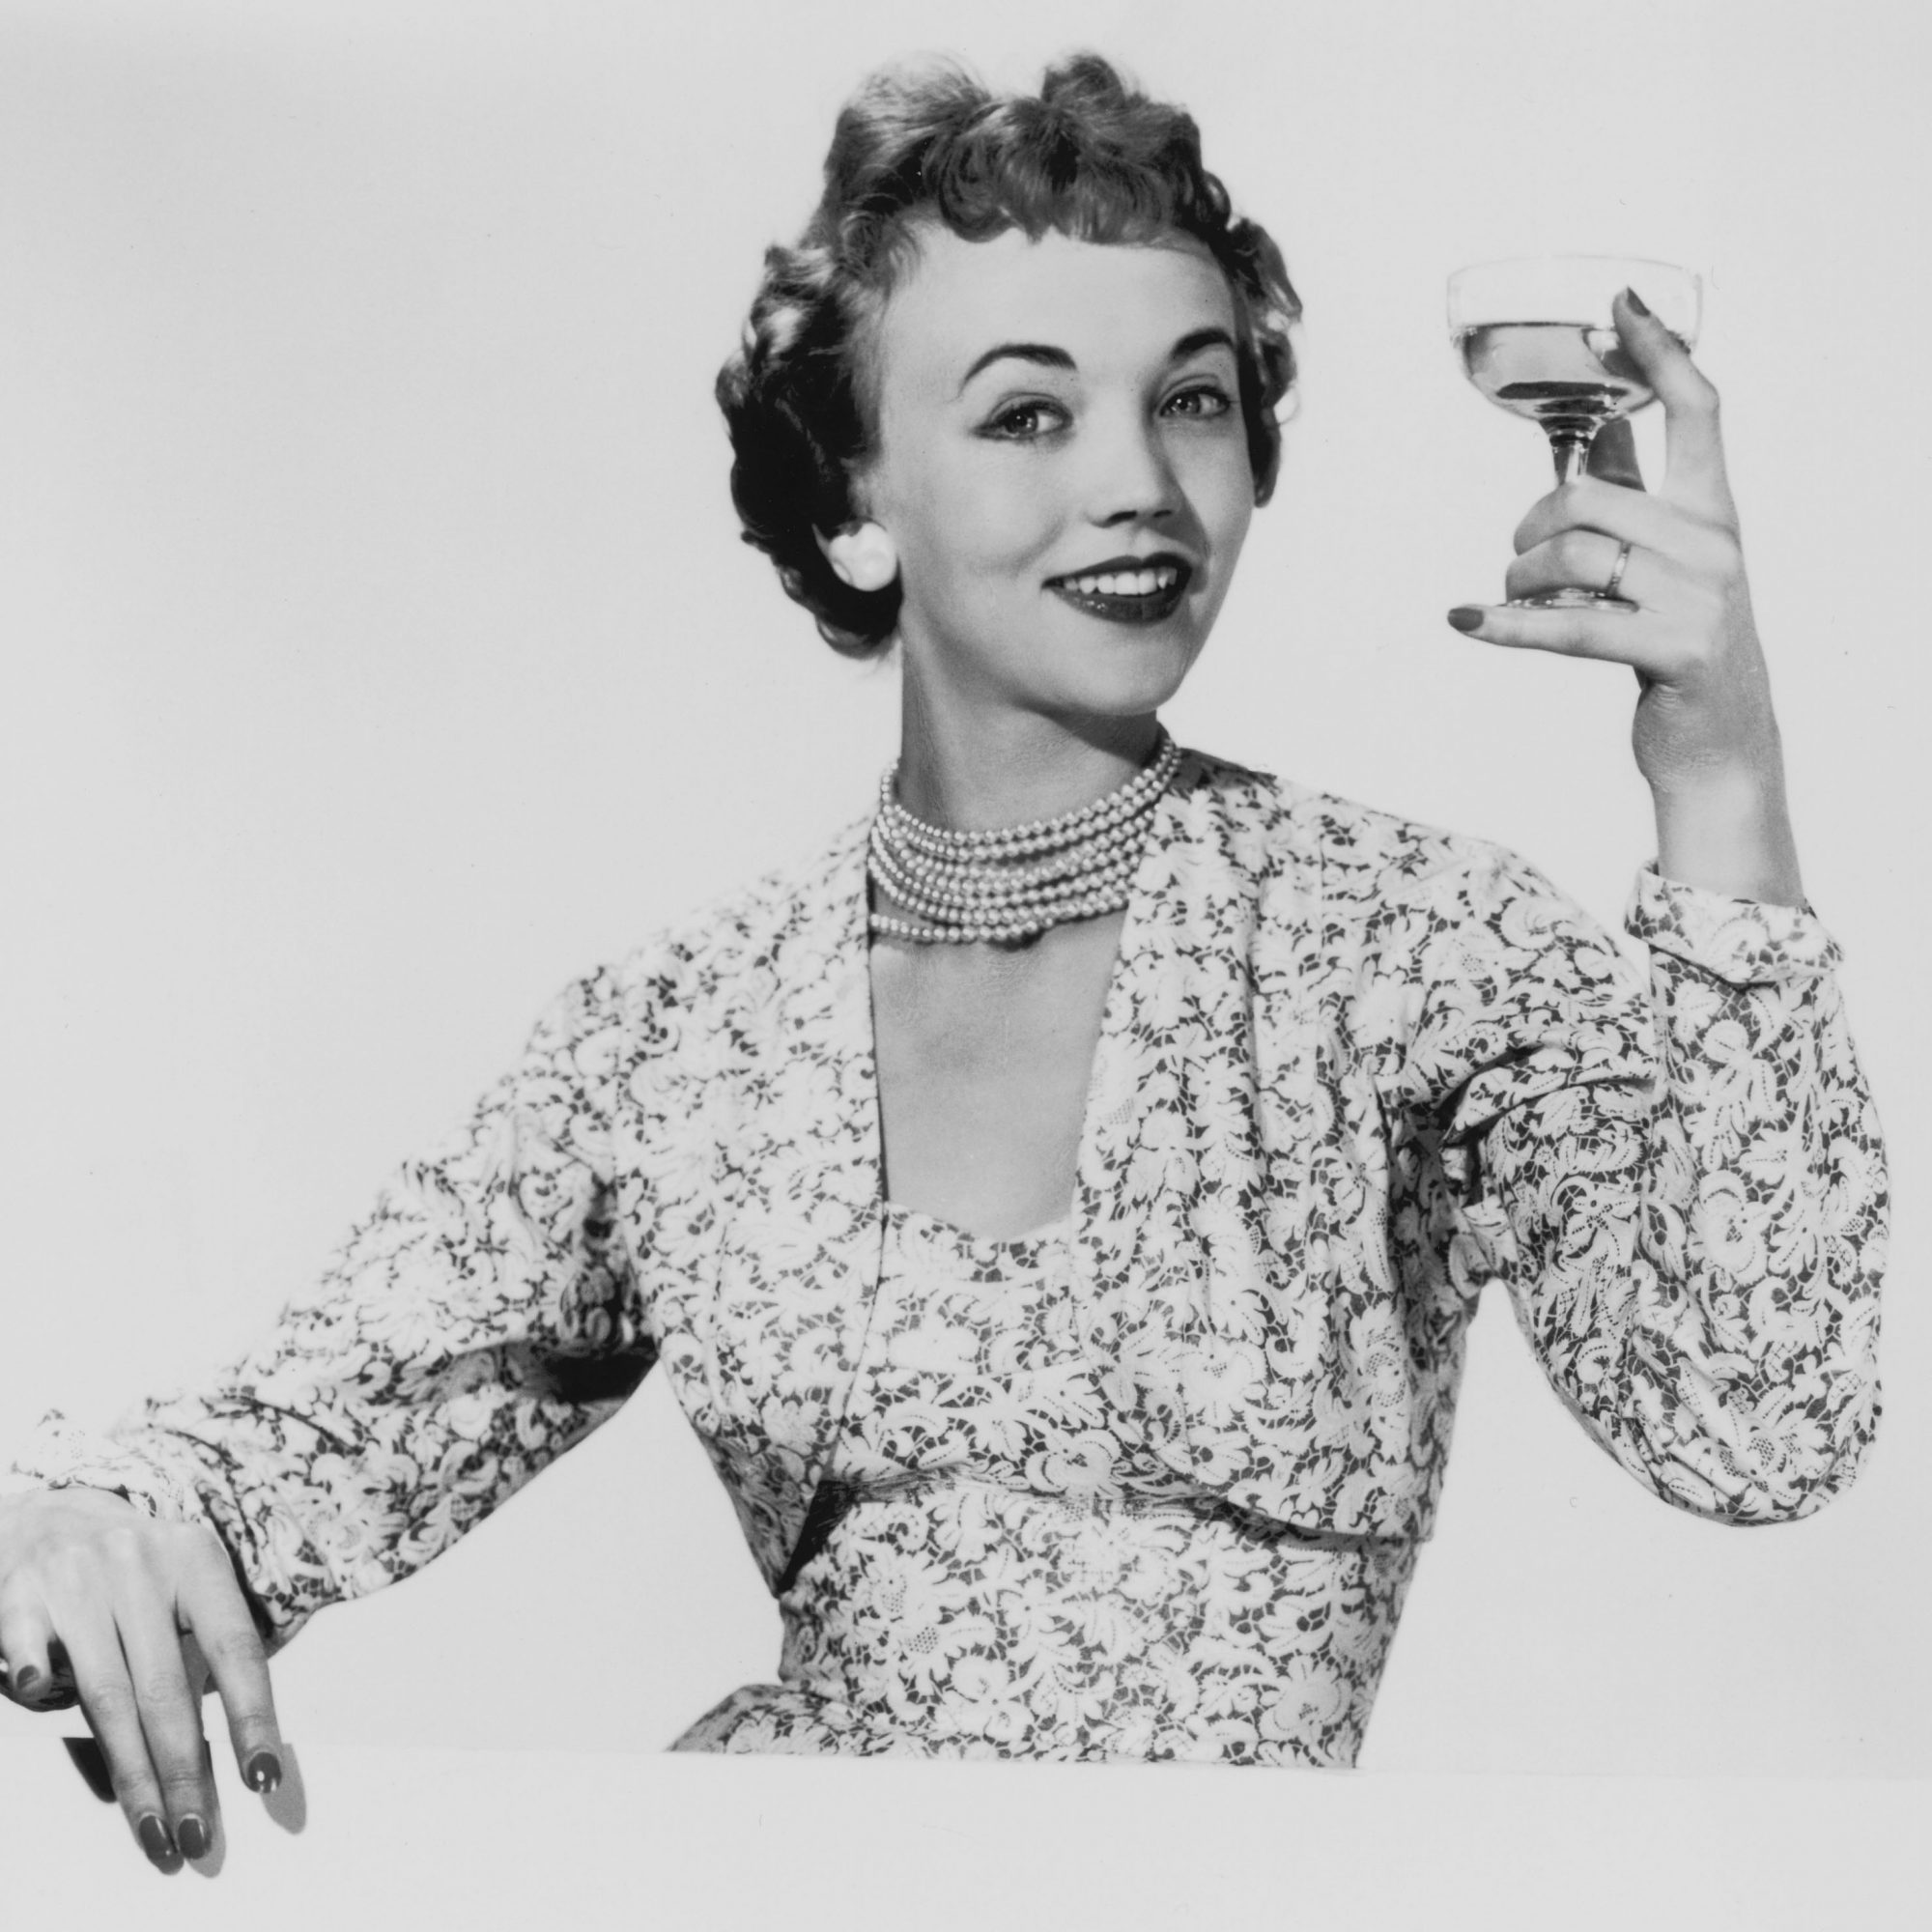 FWX DRINKING IS GOOD FOR YOU